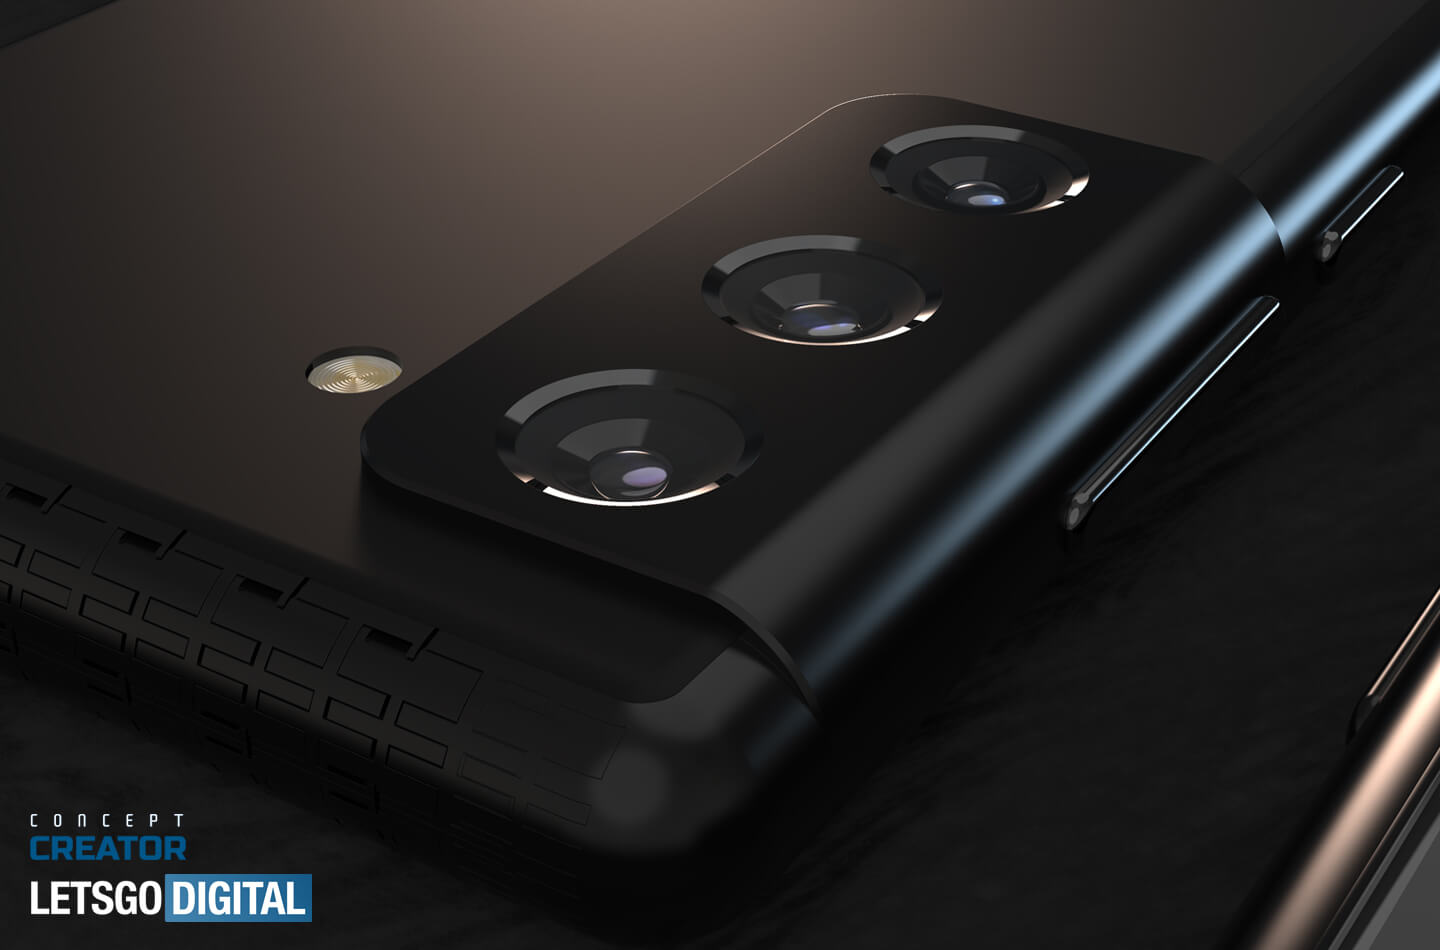 Galaxy S21 smartphone camera design